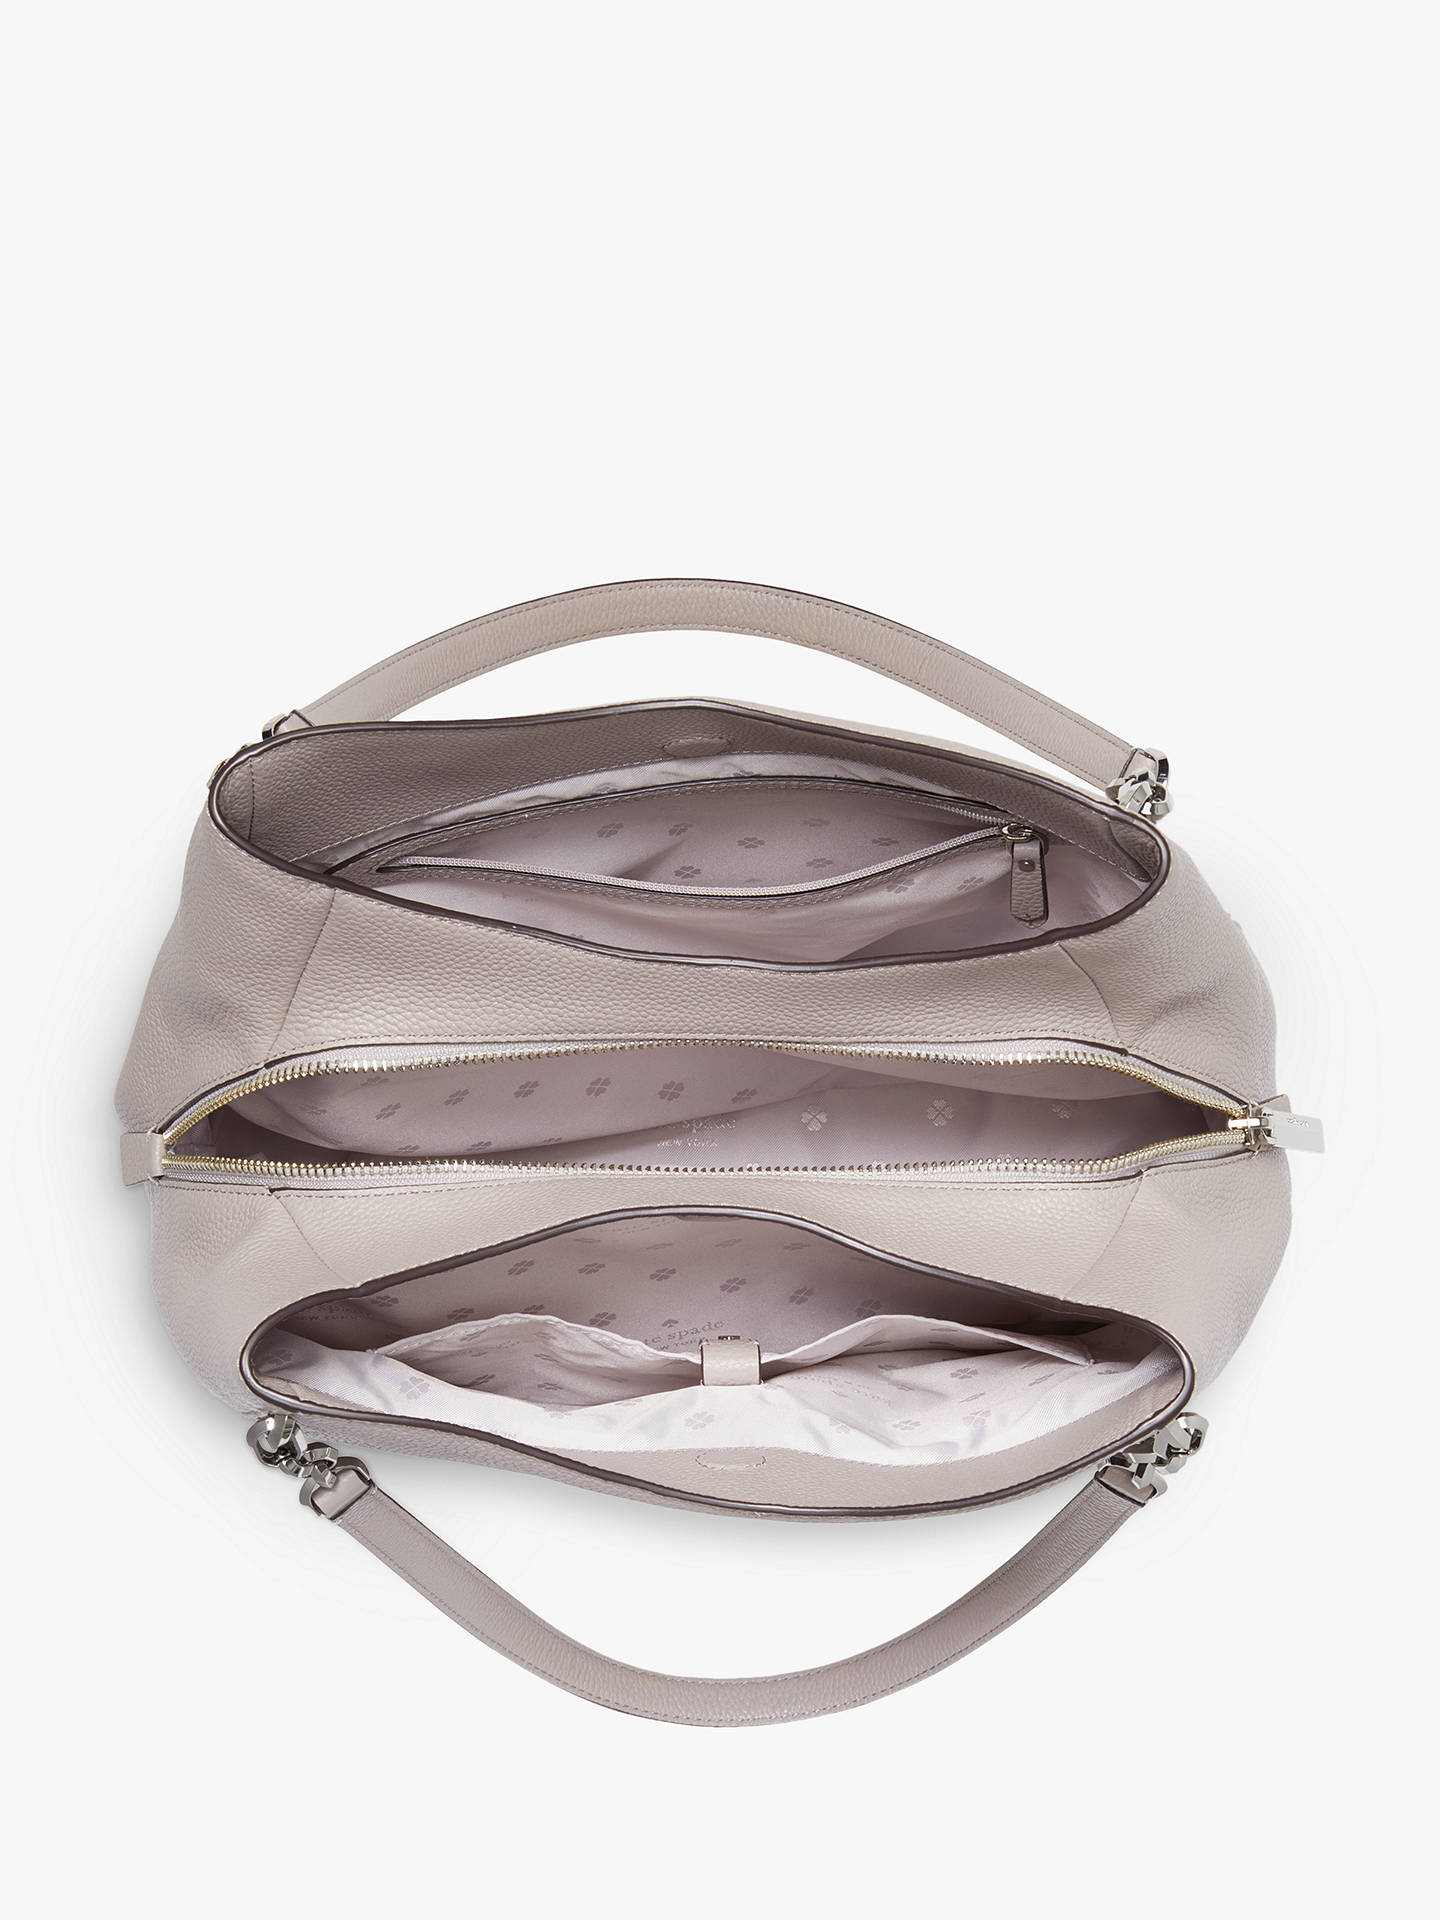 04e780f88906e ... Buy kate spade new york Hailey Large Leather Shoulder Bag